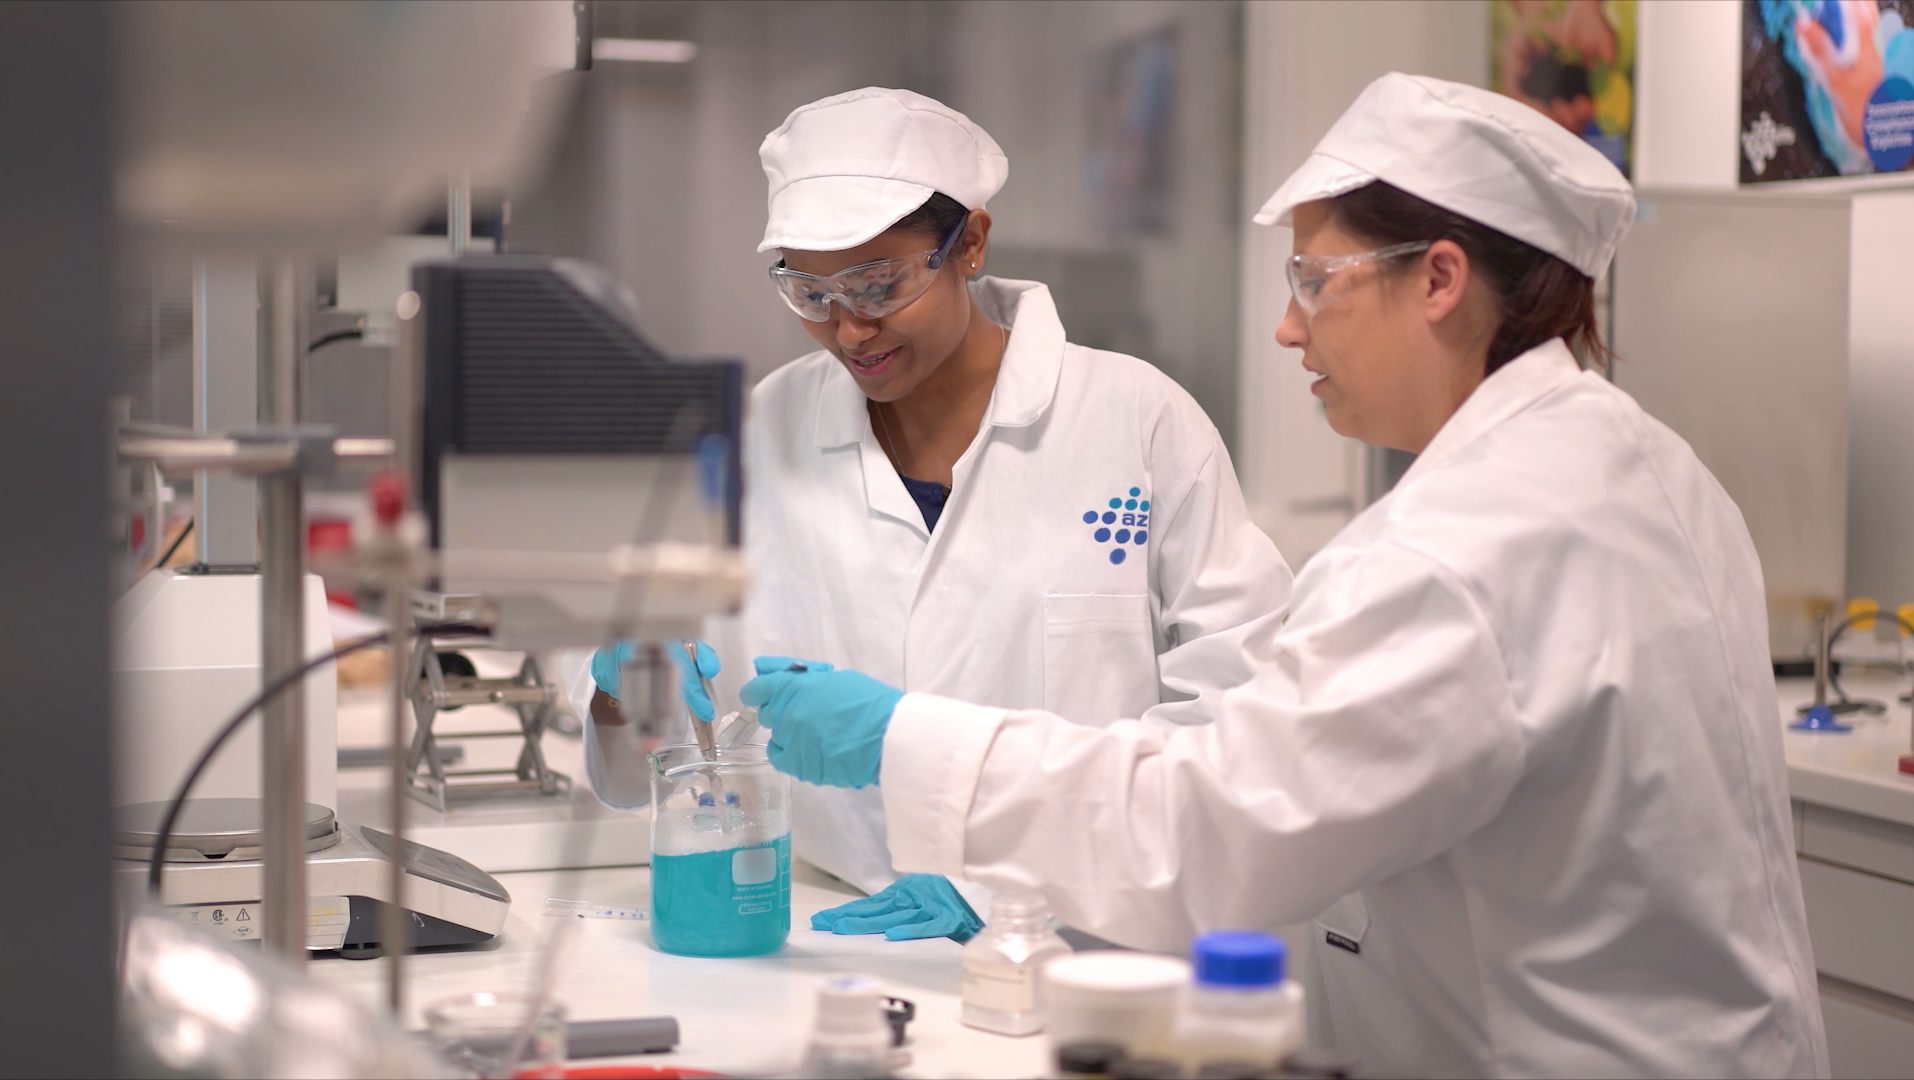 Speciality Chemical Suppliers | Innovation Through